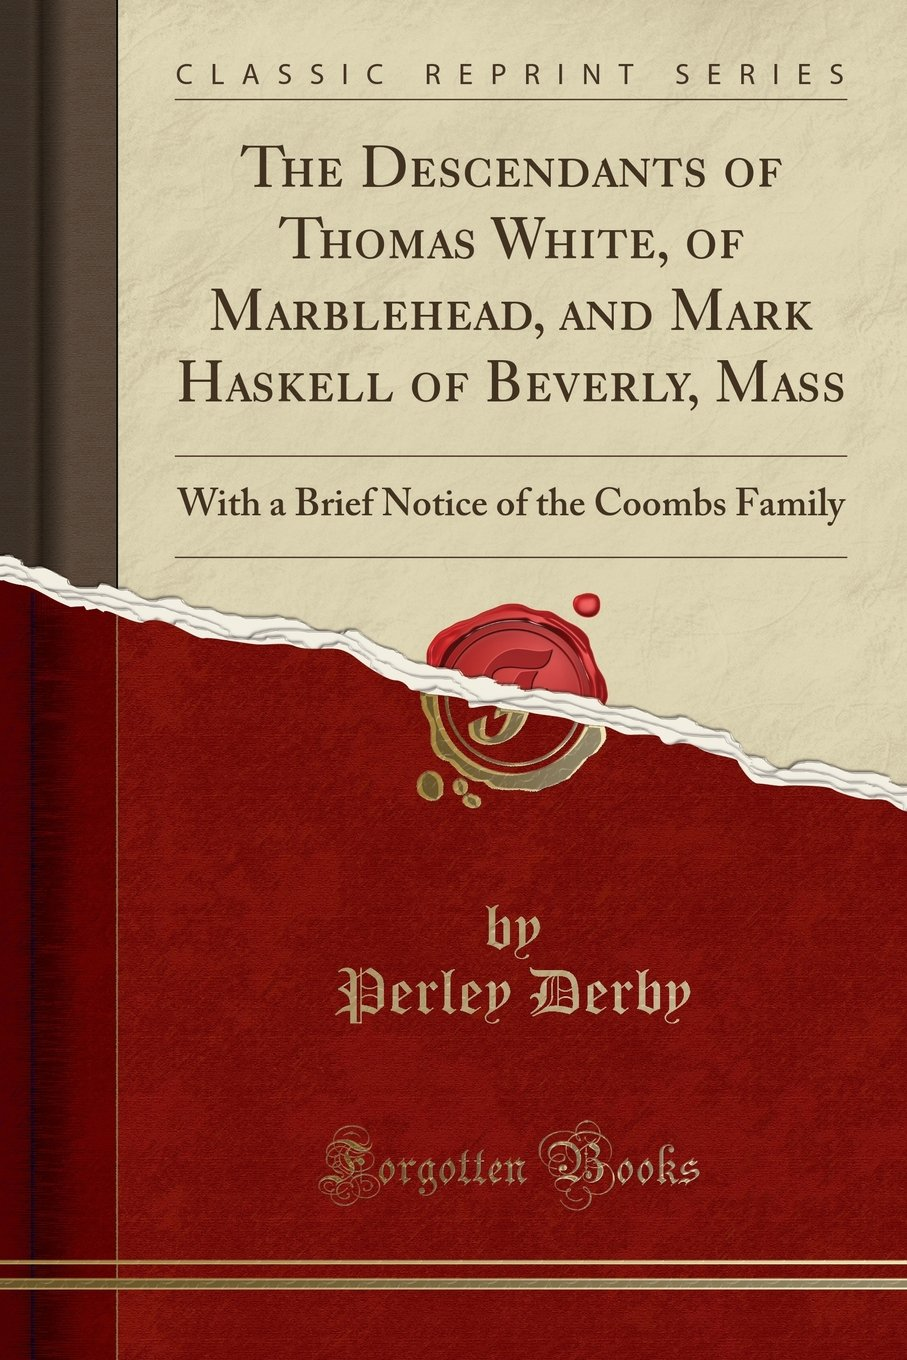 Download The Descendants of Thomas White, of Marblehead, and Mark Haskell of Beverly, Mass: With a Brief Notice of the Coombs Family (Classic Reprint) PDF